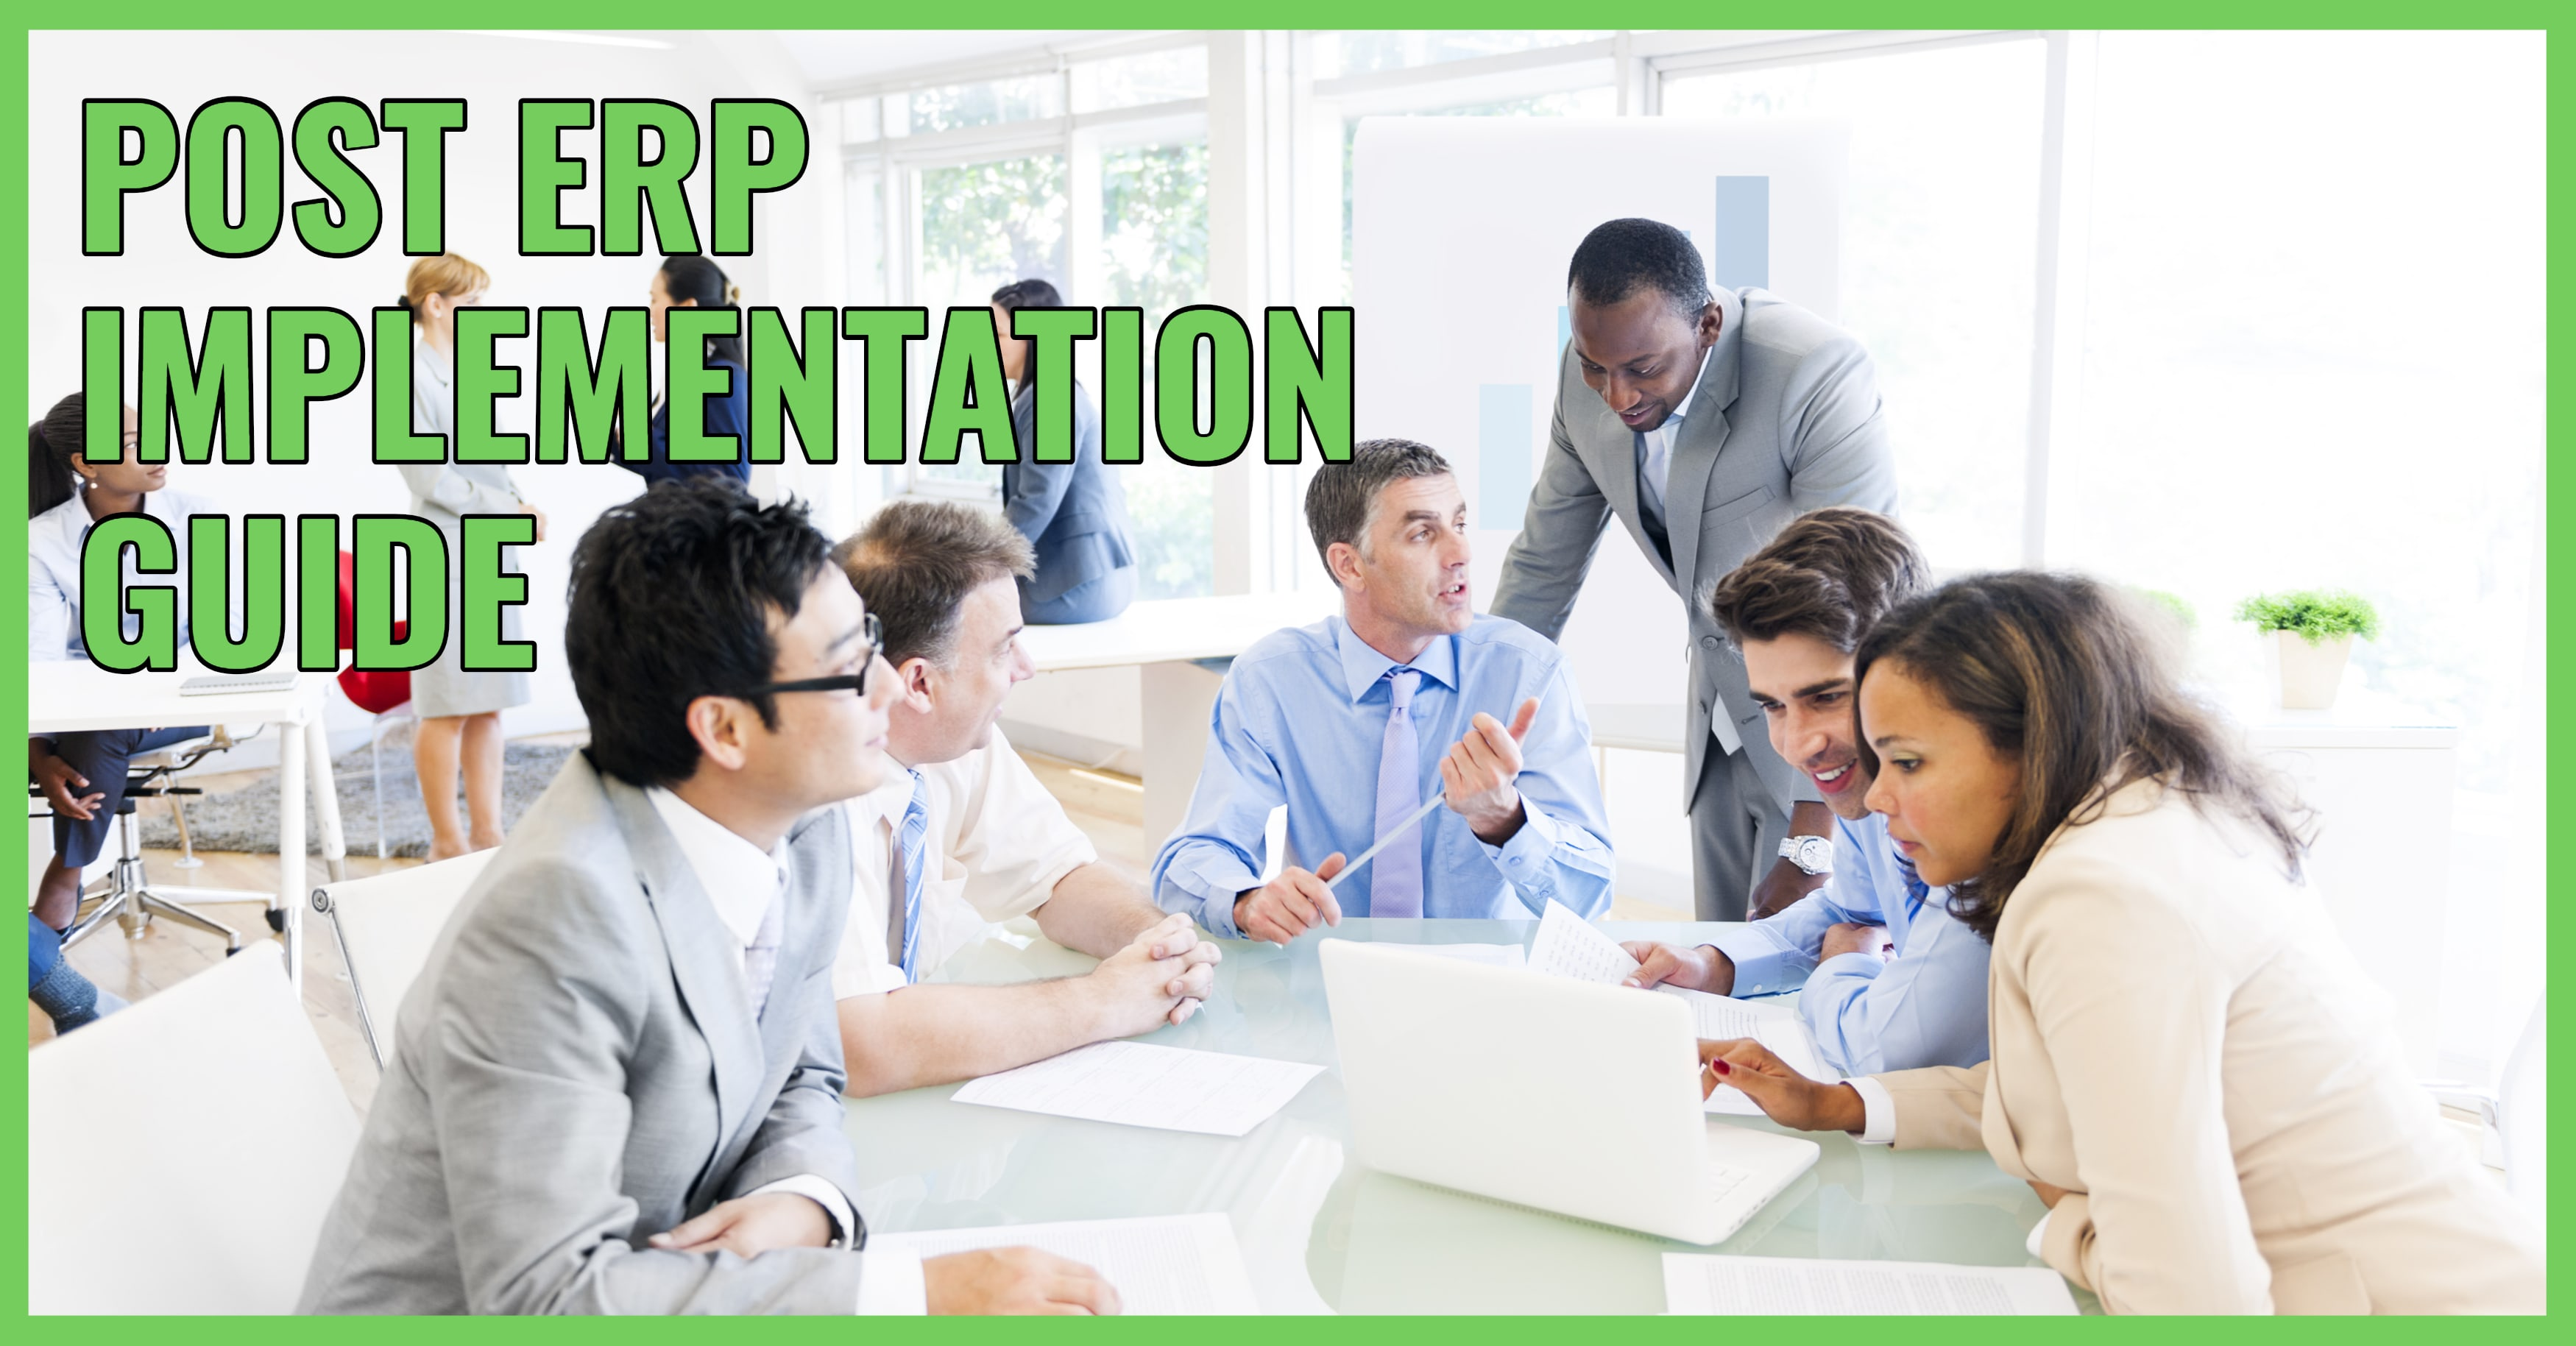 The Definitive Post ERP Implementation Guide